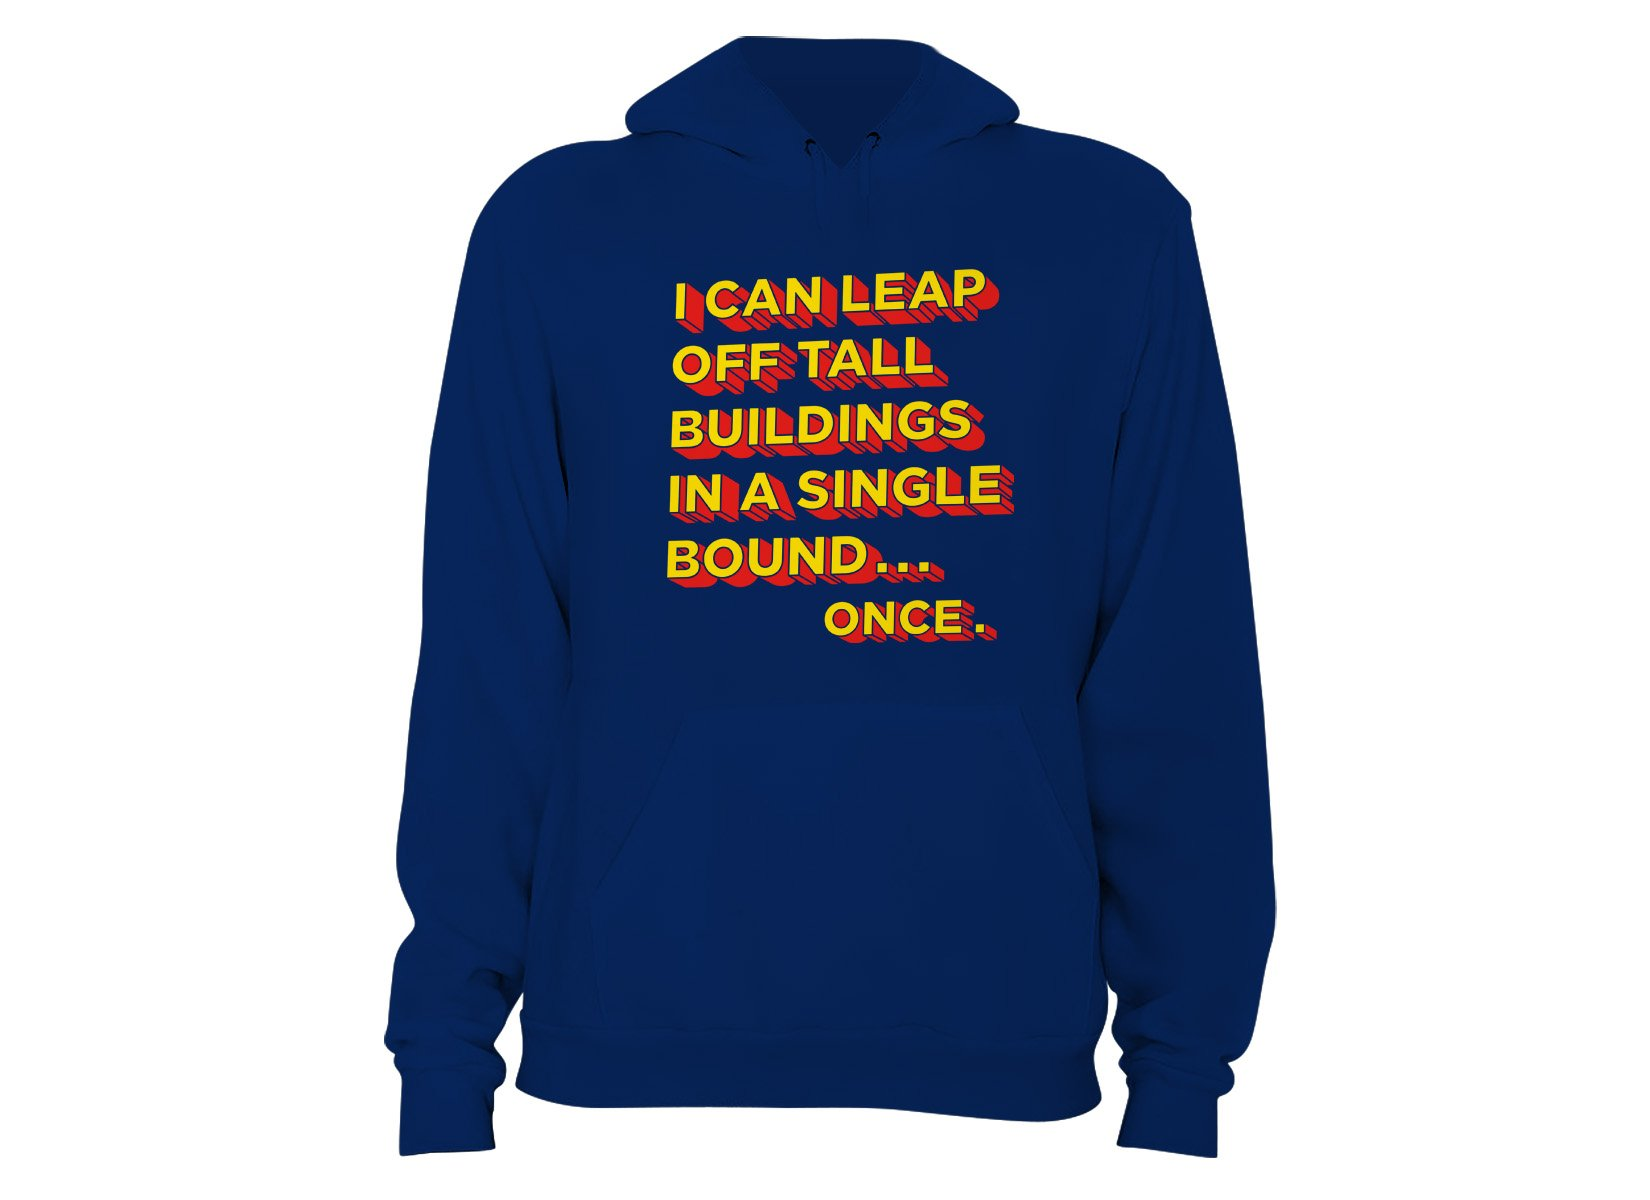 Tall Buildings In A Single Bound on Hoodie